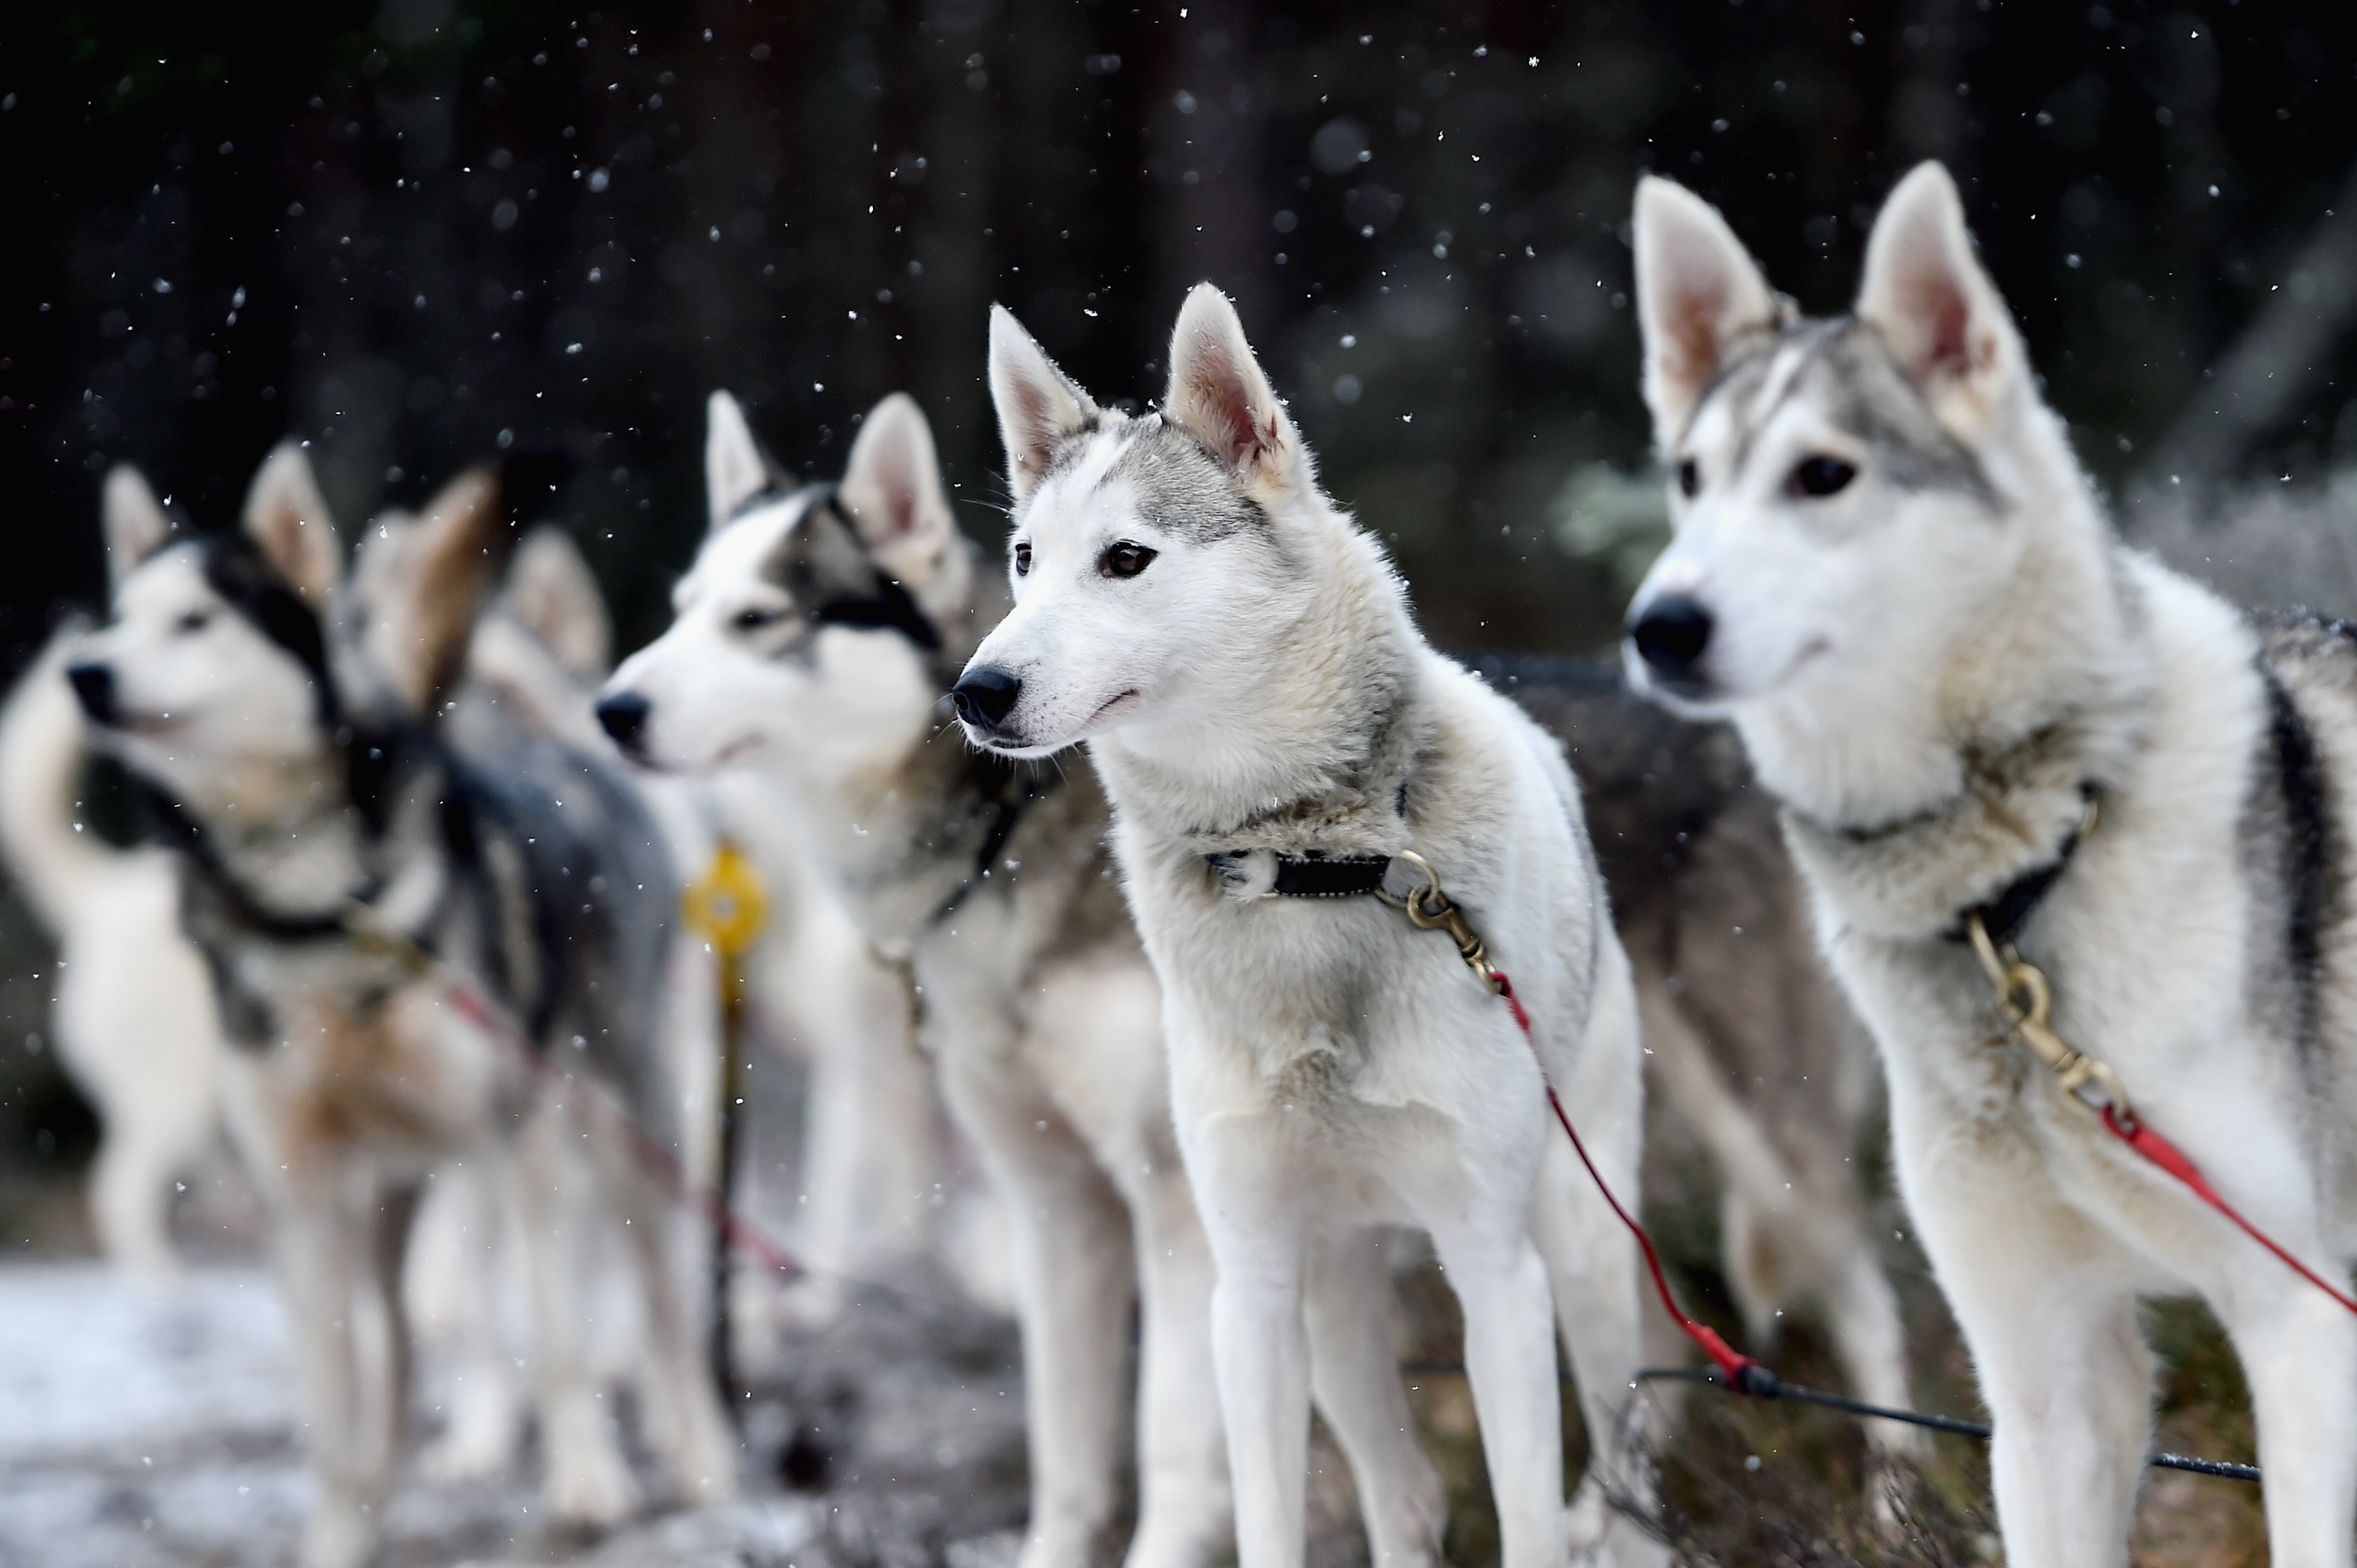 Thieves have stolen two husky sleds from an Aberdeenshire property.